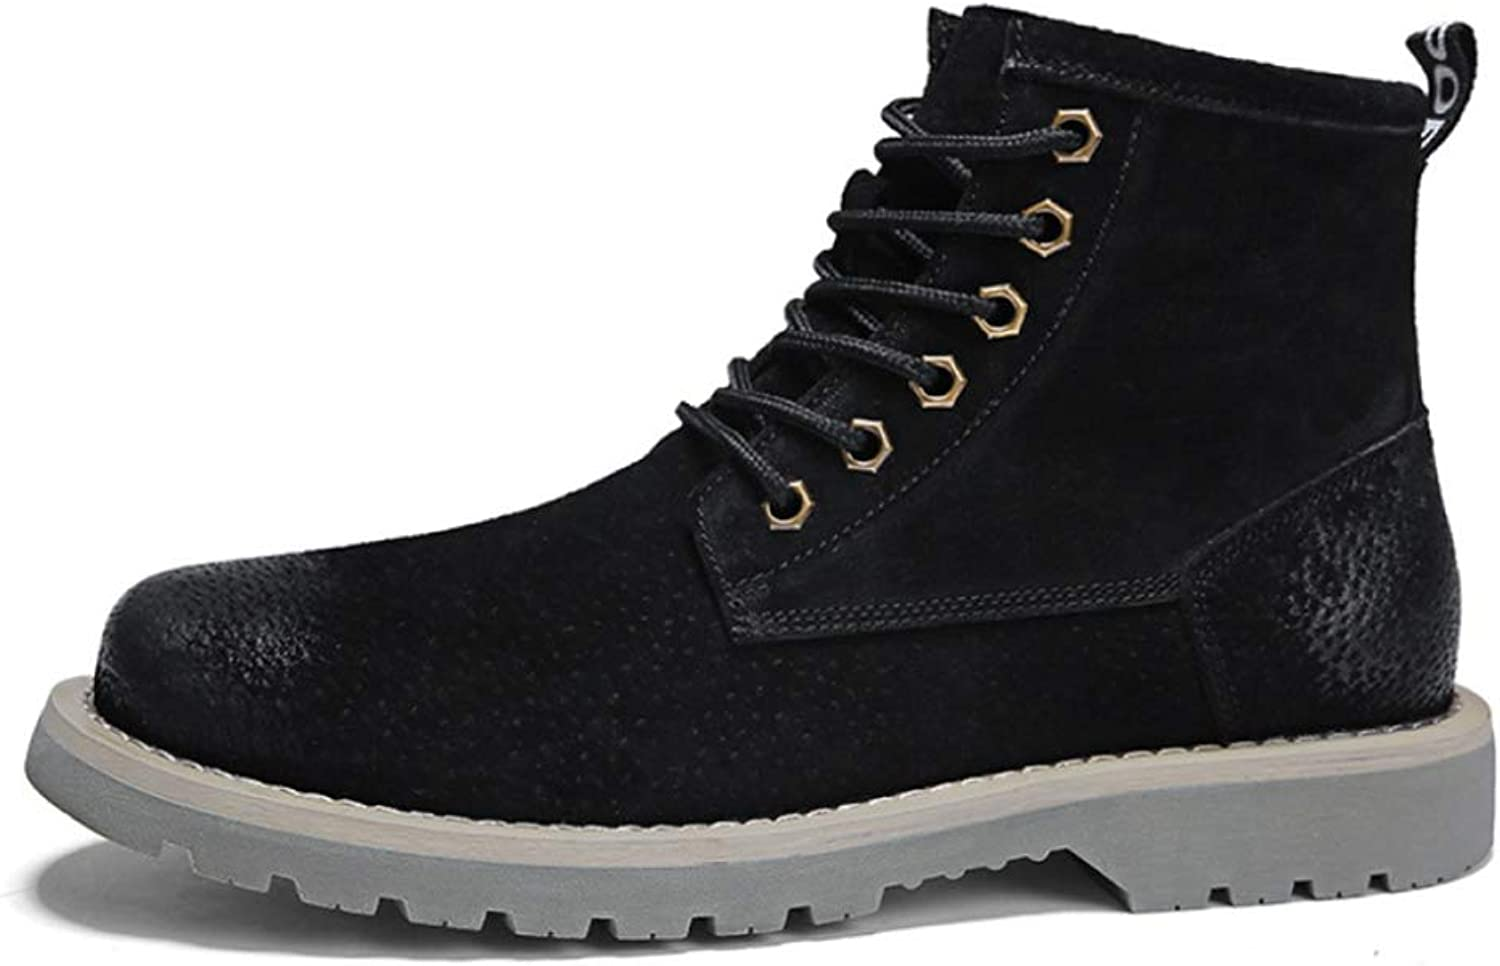 Men'S Martin Boots Winter Warm Ankle Boots Fully Fur Lined Anti Slip Boots Leather Waterproof Work Hiker Boots